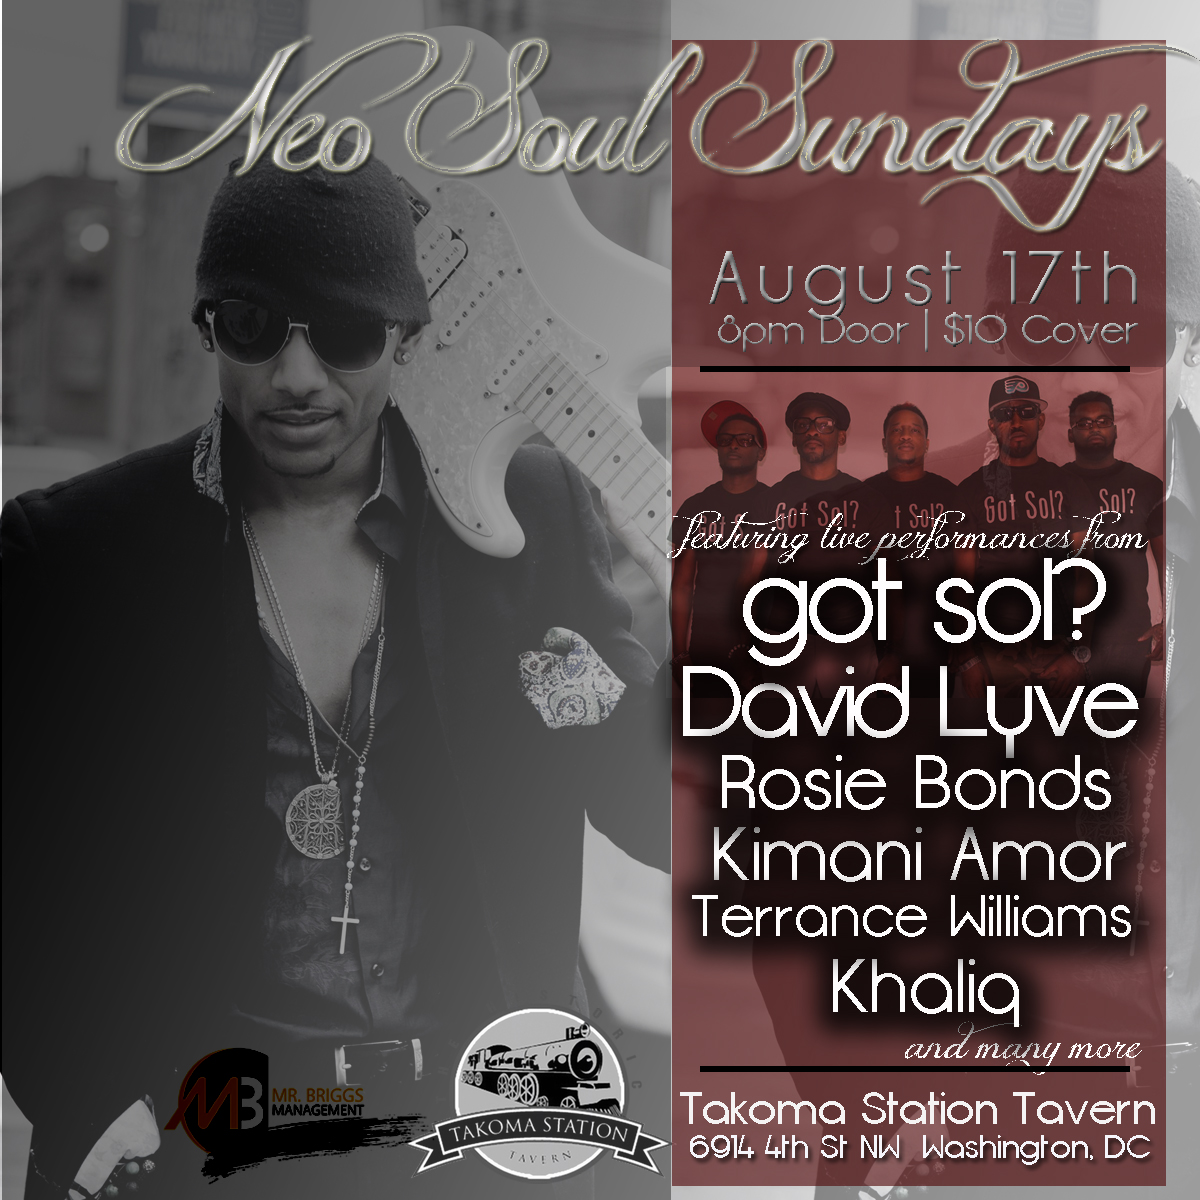 David Lyve and Got Sol? at Neo Soul Sundays